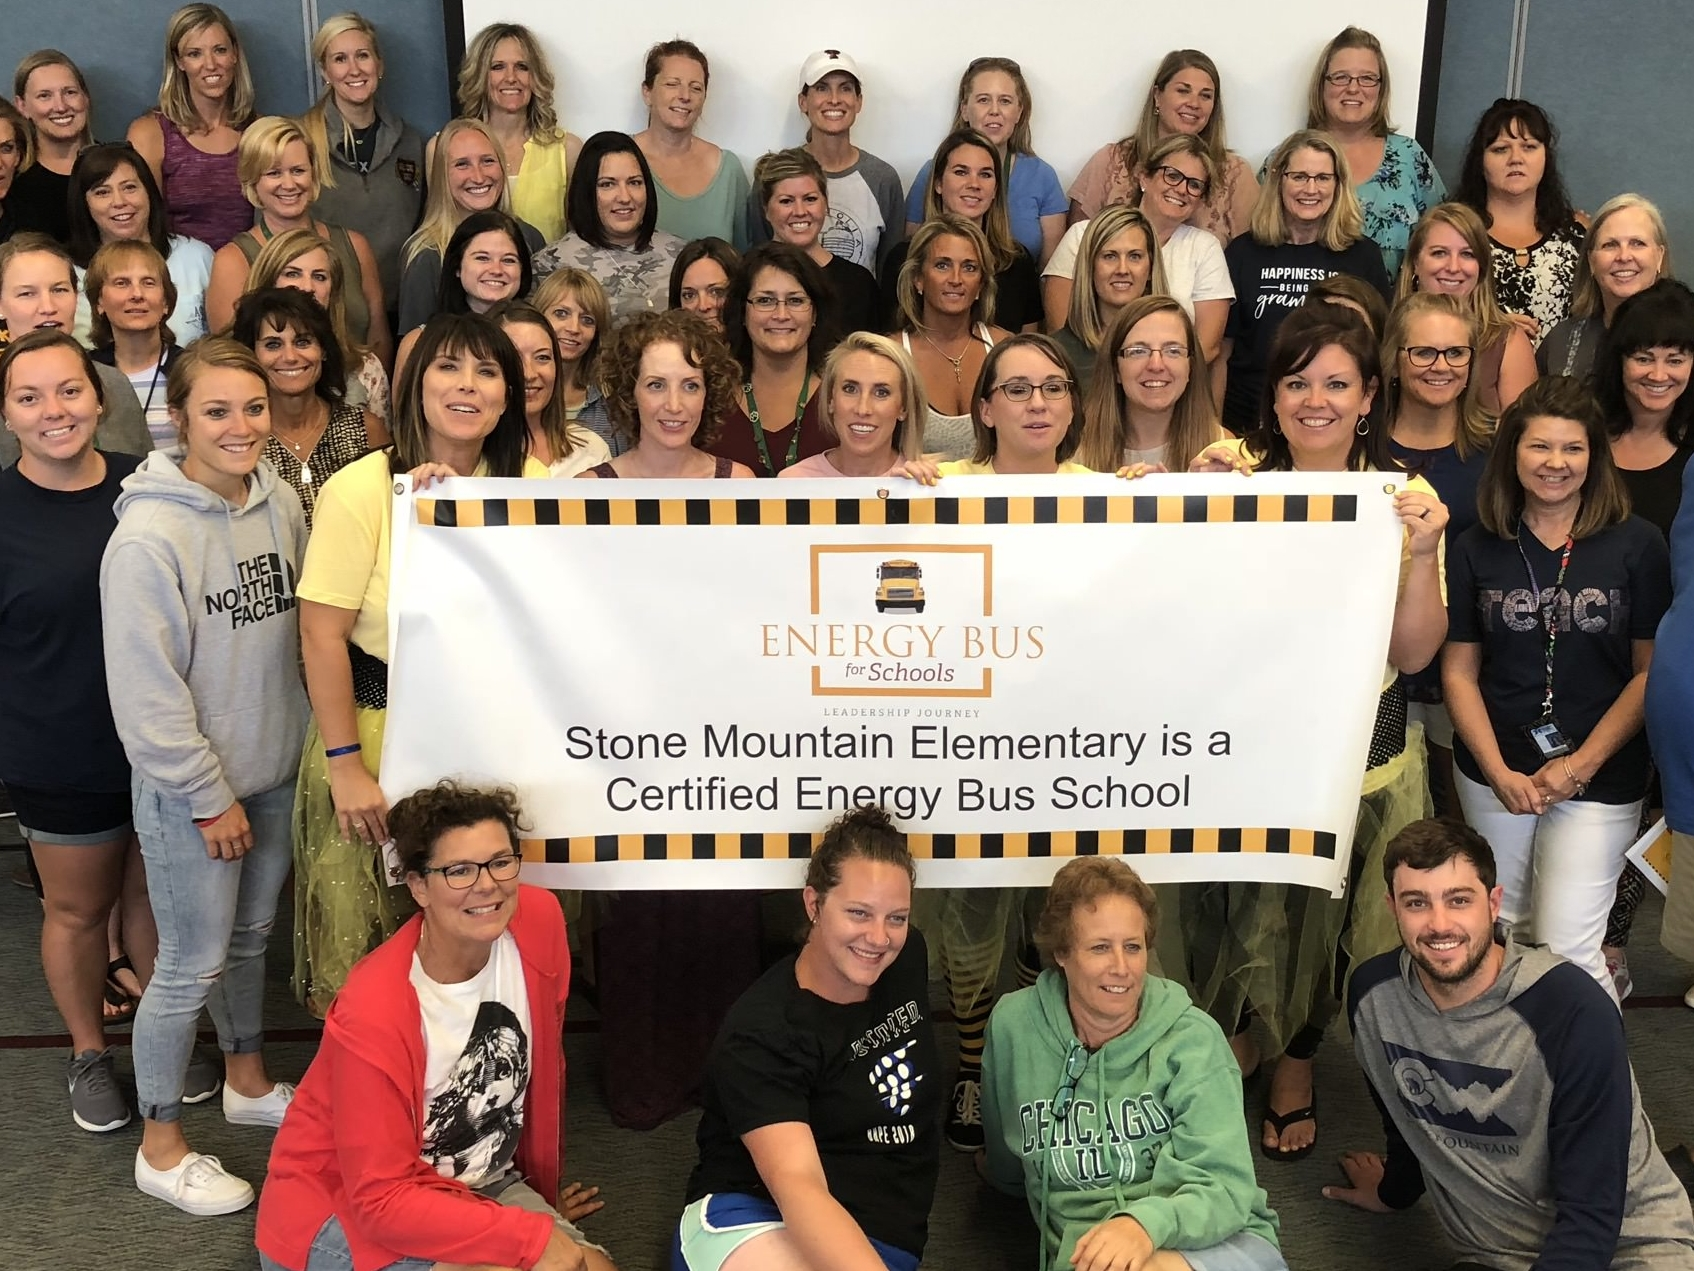 Become an Energy Bus Certified School -